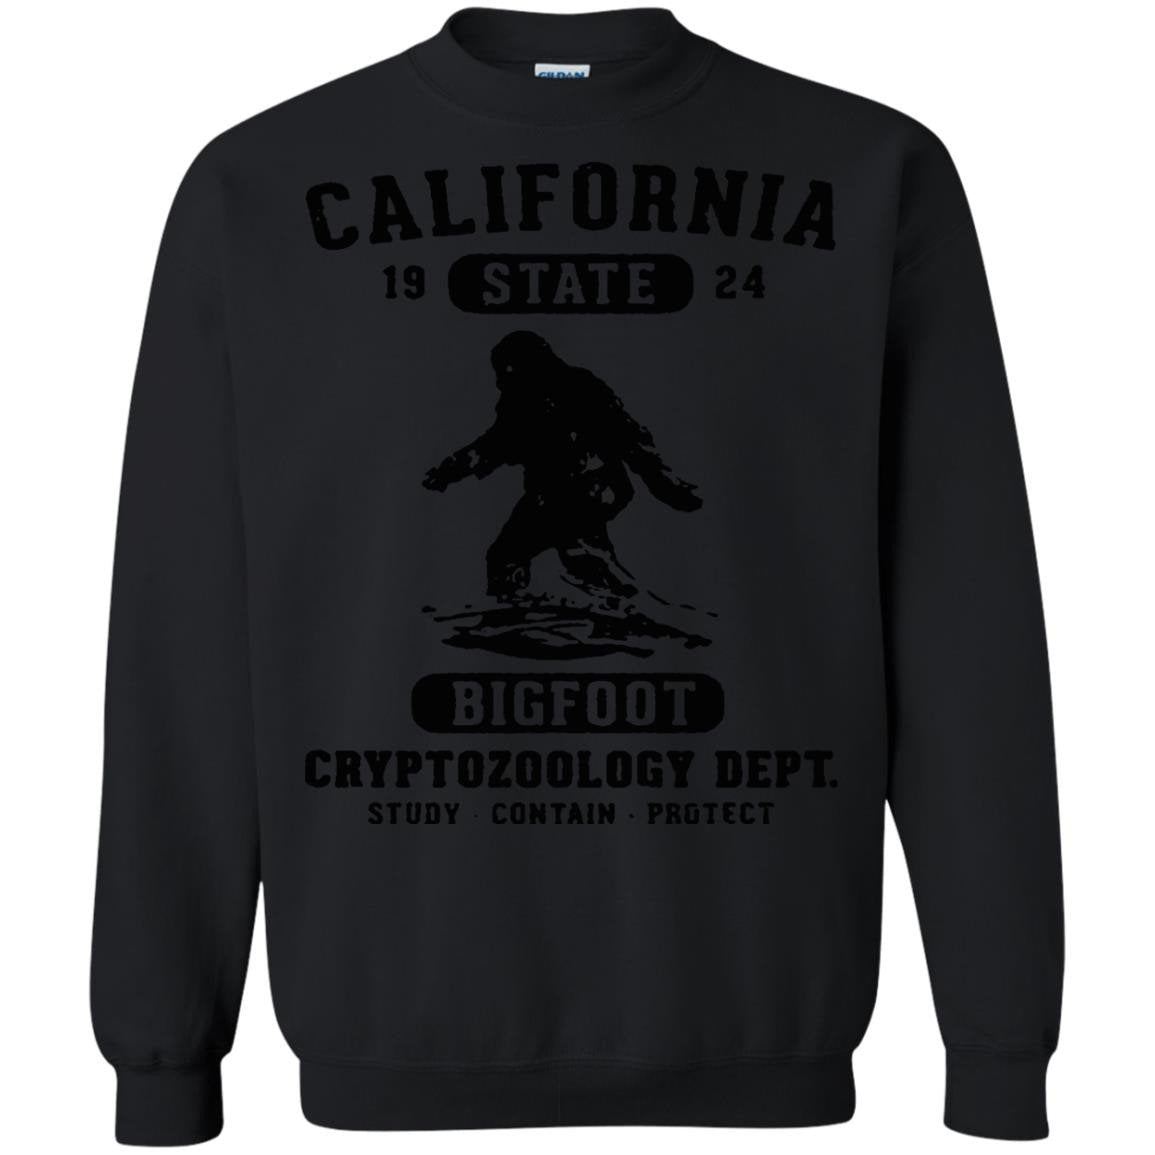 America Big Foot Shirts CALIFORNIA BIGFOOT CRYPTOZOOLOGY T-shirts Hoodies Sweatshirts